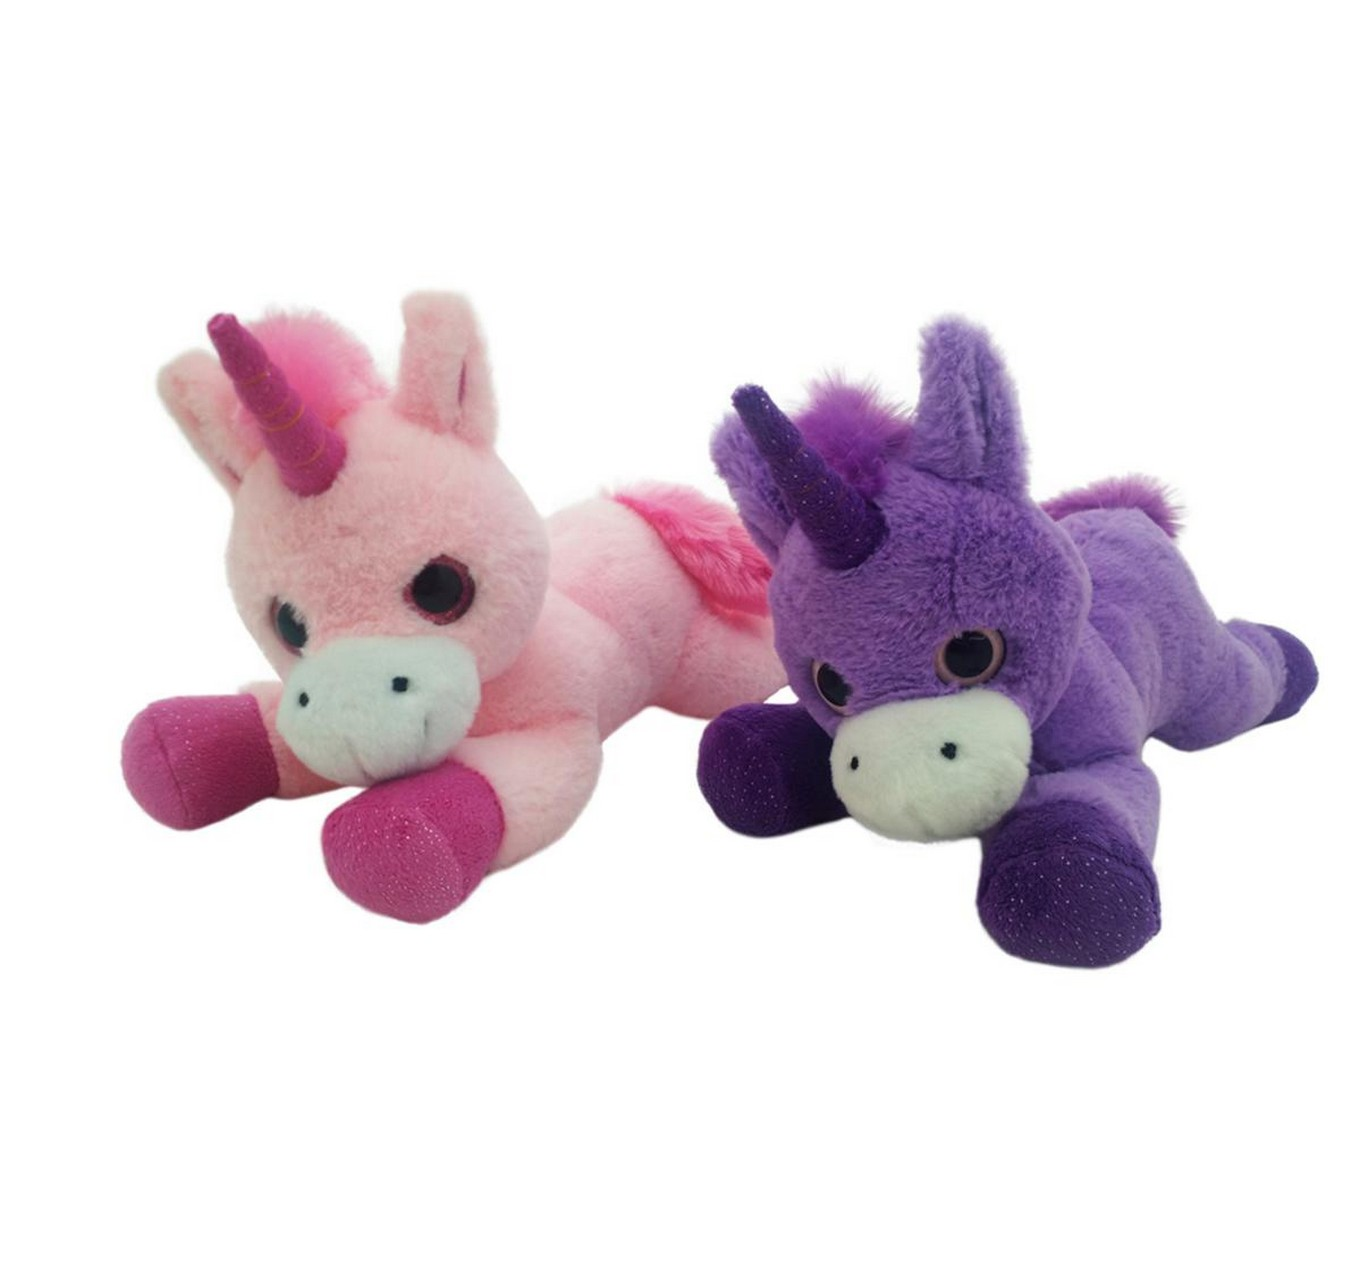 Unicorn Plush - Each